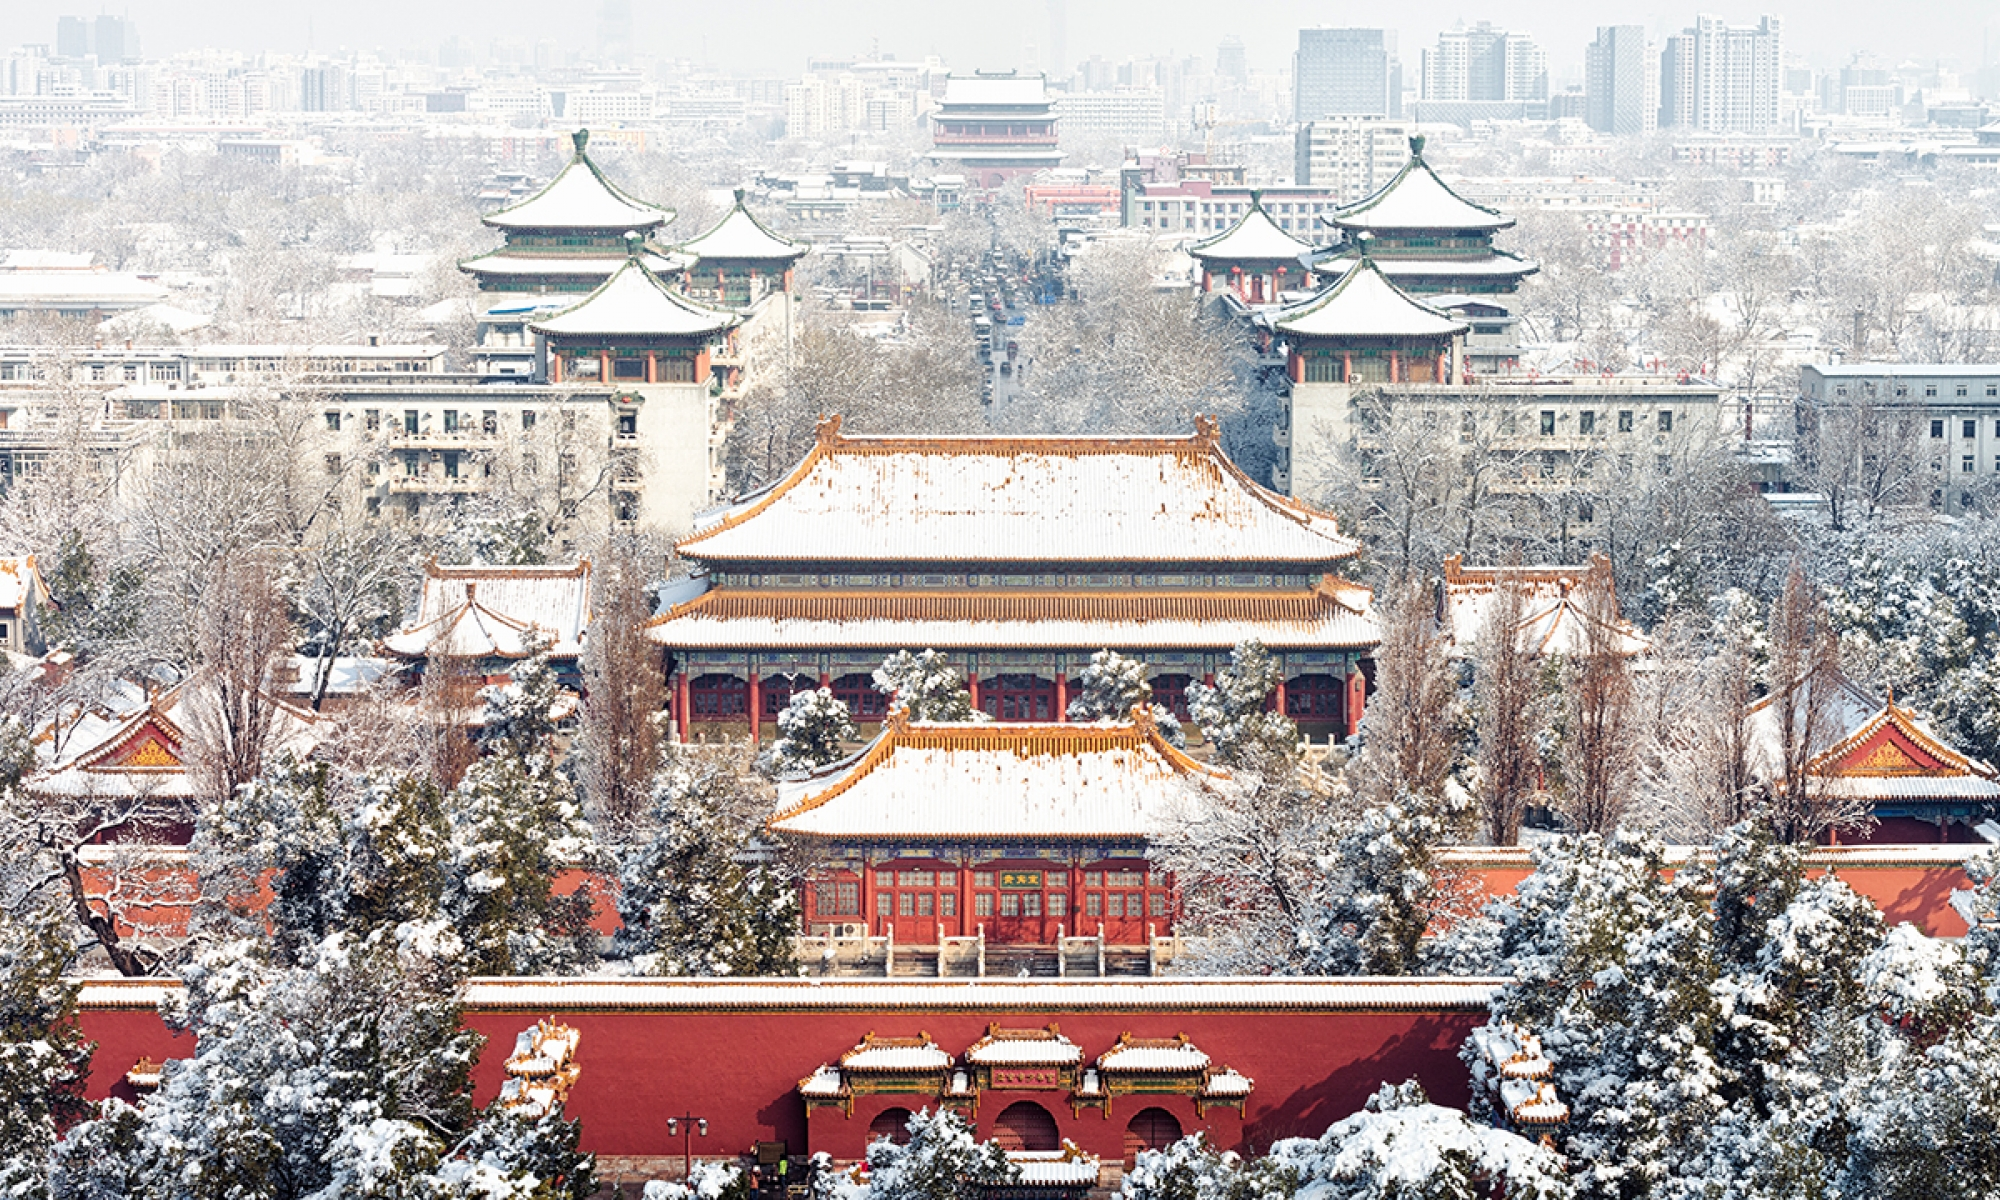 Building in Beijing with snow on the roof